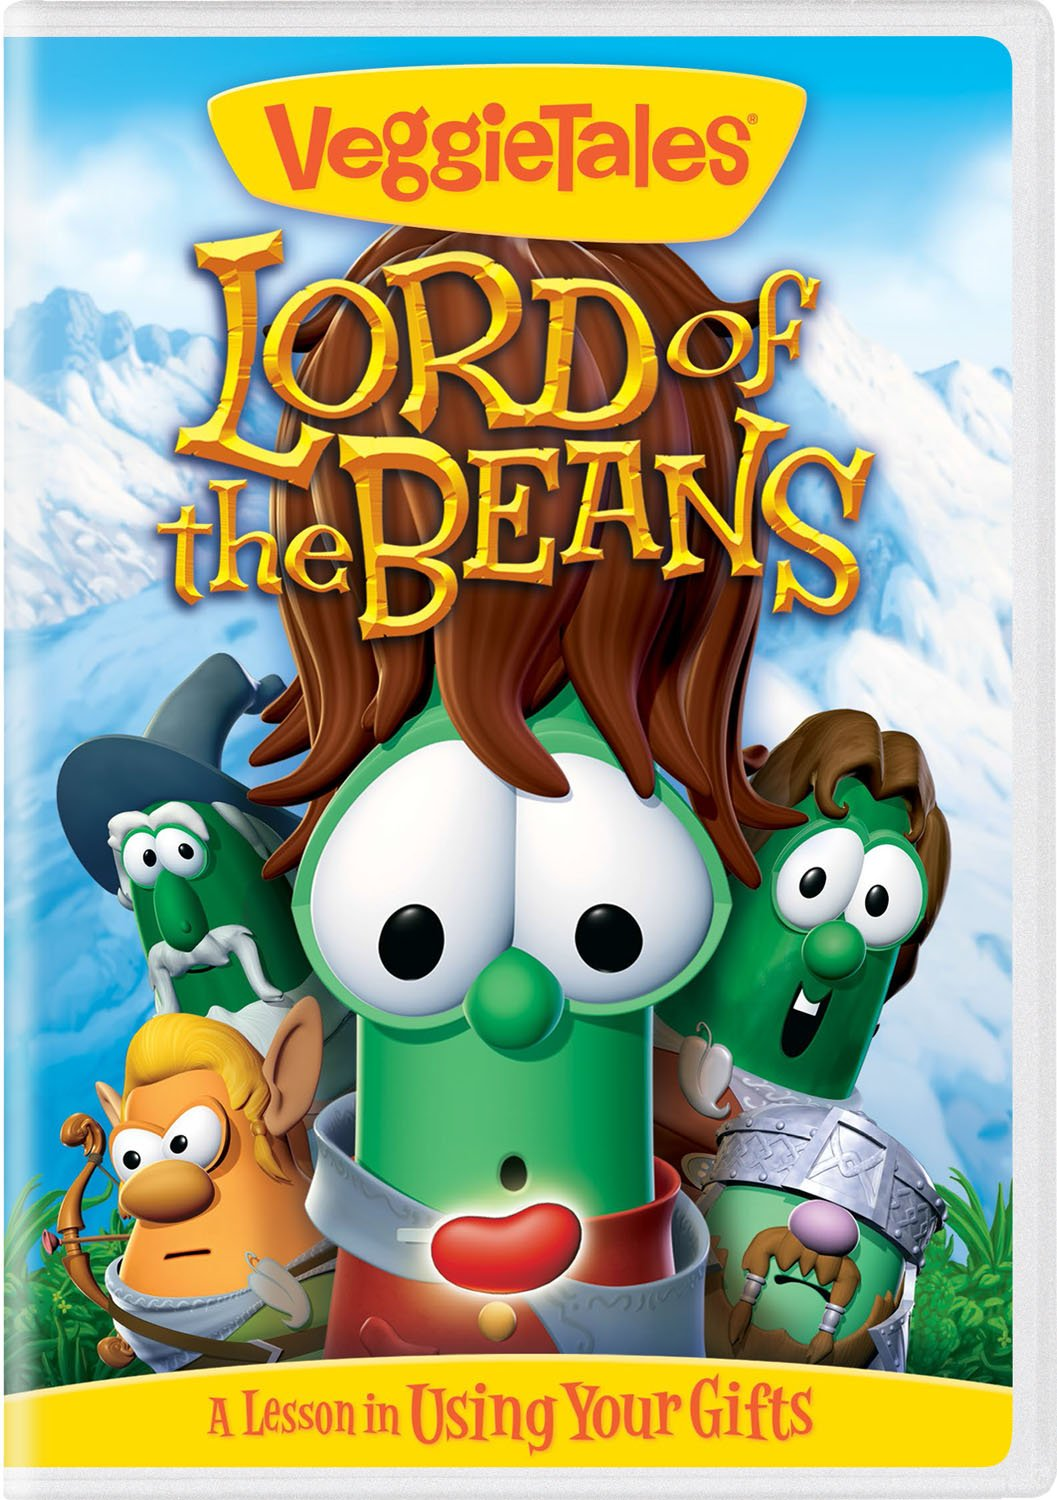 VeggieTales - Lord of the Beans ANConnect 2230975 Cartoons & Animation Movie